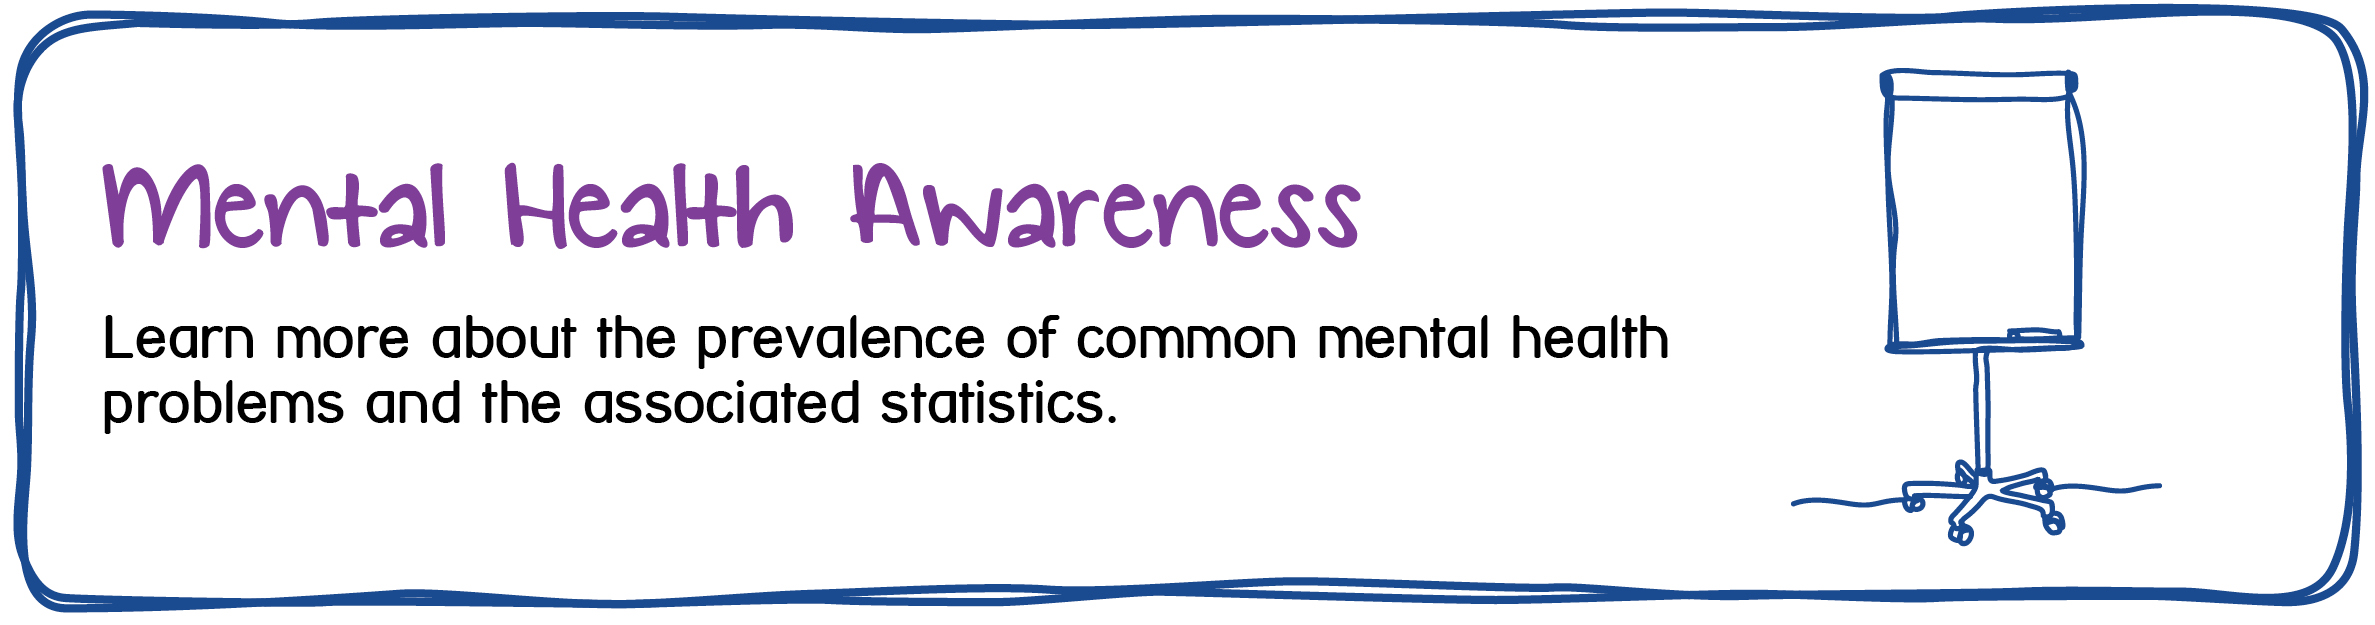 Mental Health Awareness - Learn more about the prevalence of common mental health problems and the associated stats.